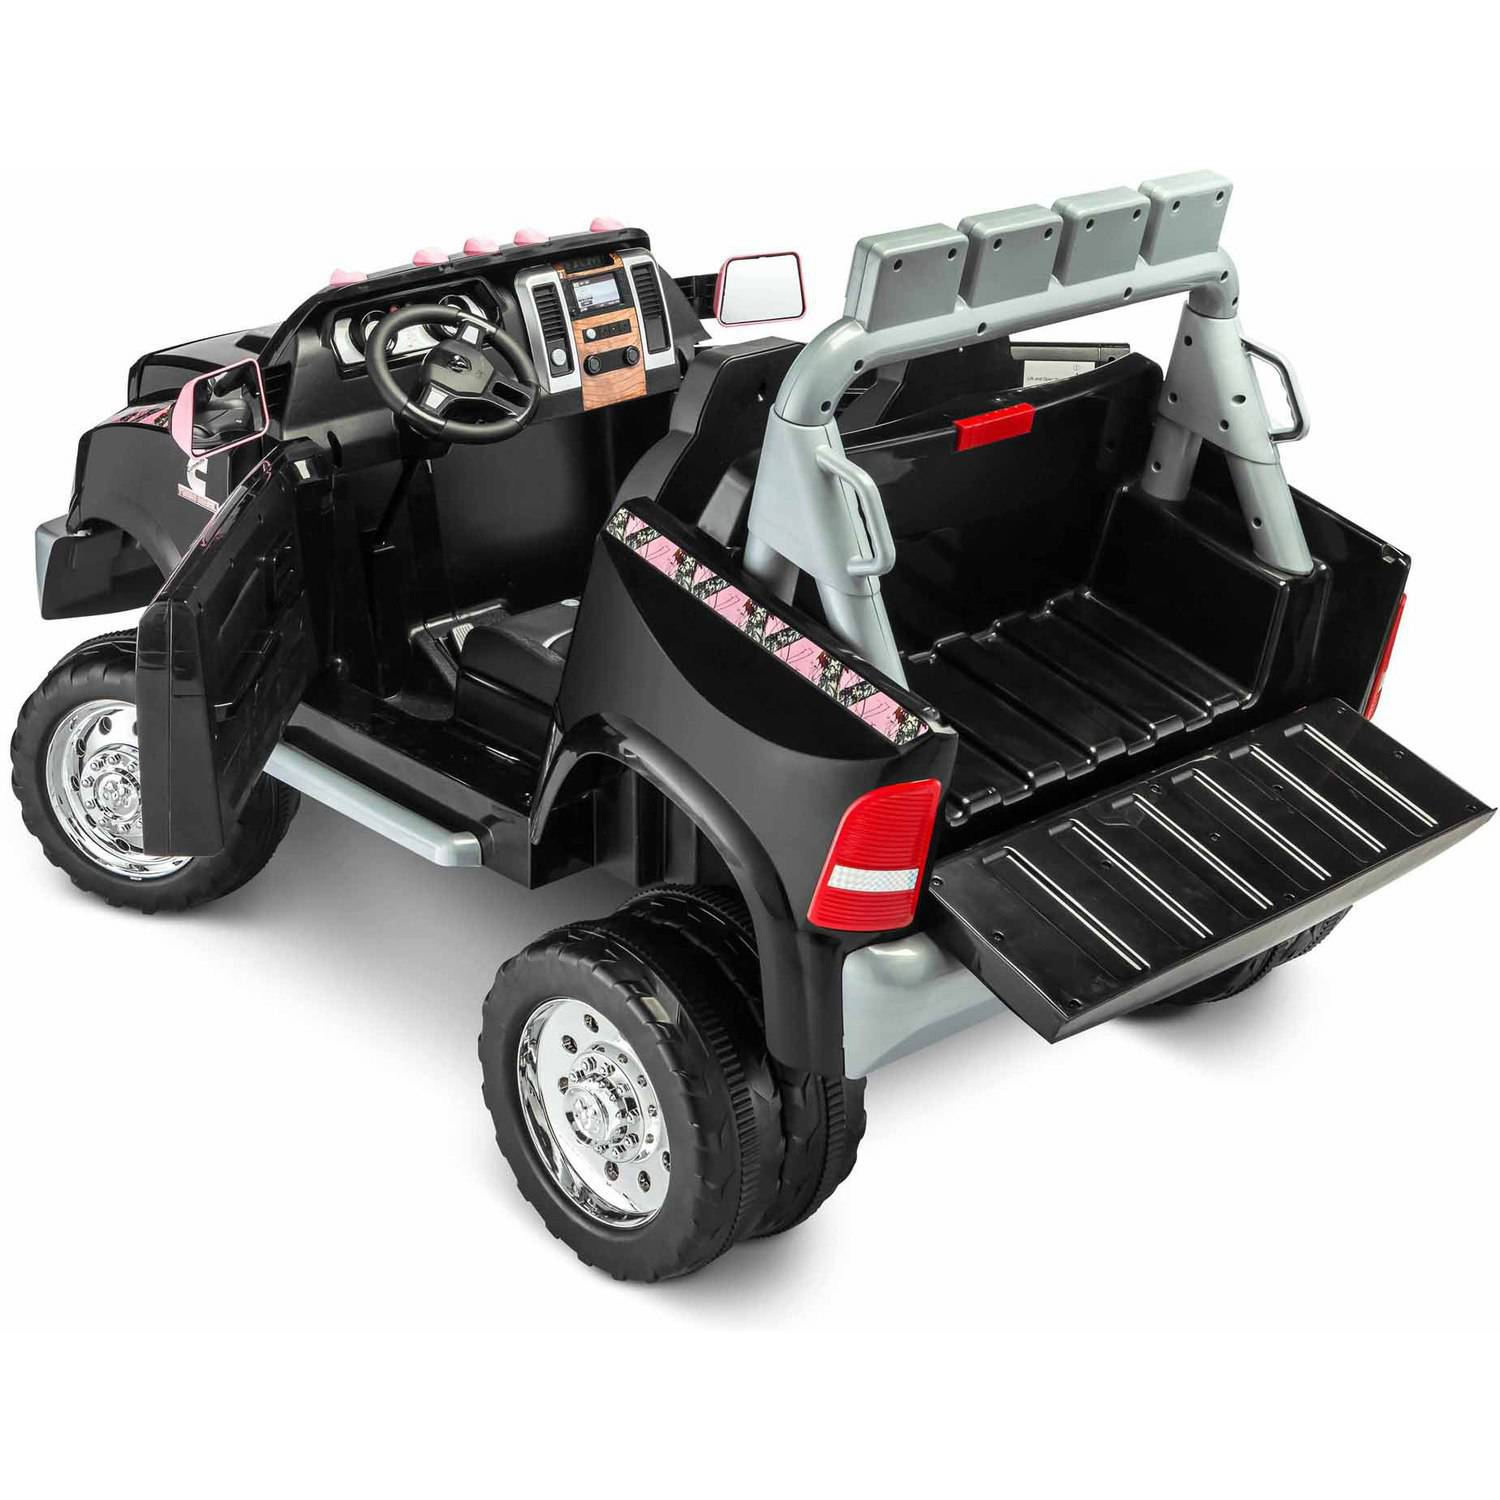 kidtrax ram 3500 dually longhorn edition 12 volt battery. Black Bedroom Furniture Sets. Home Design Ideas